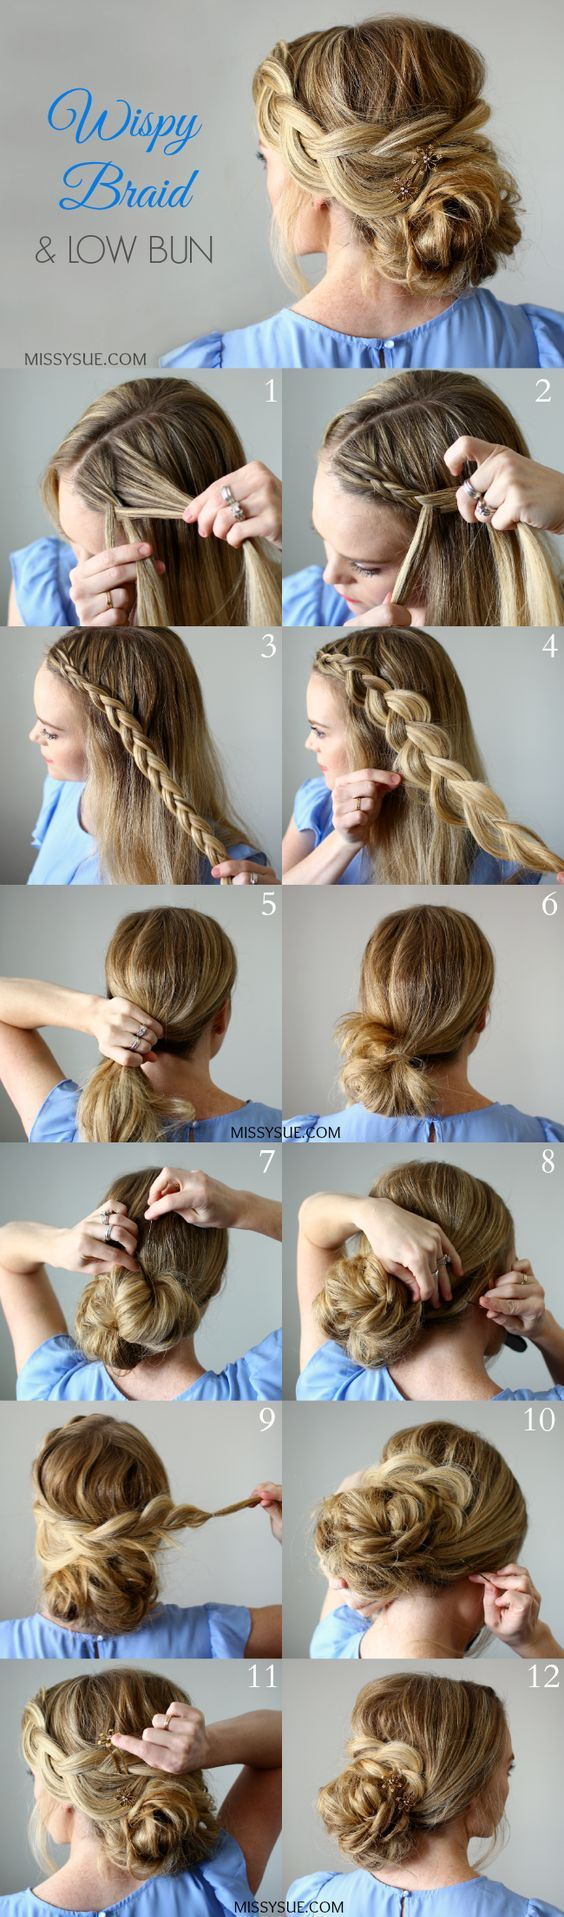 Wispy Braid and Low Bun: